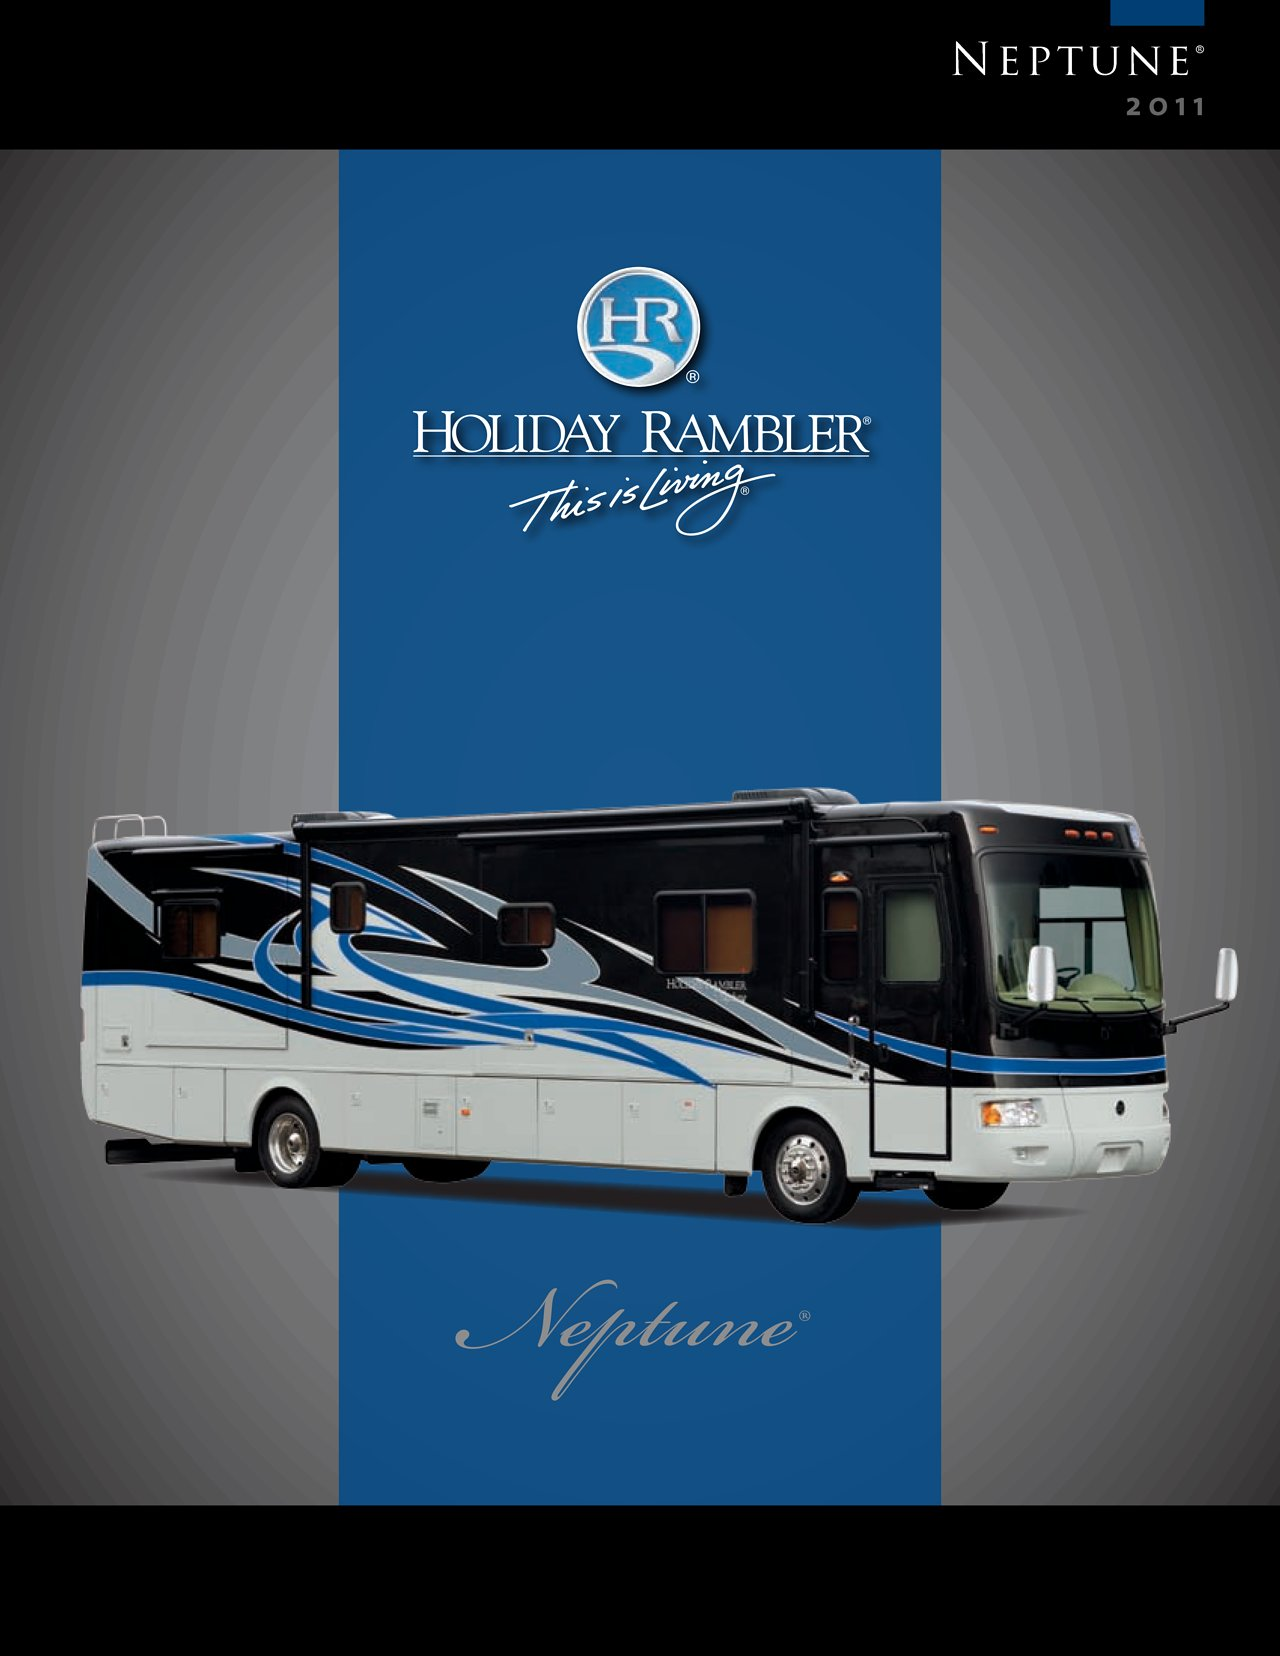 2011 Holiday Rambler Neptune Brochure